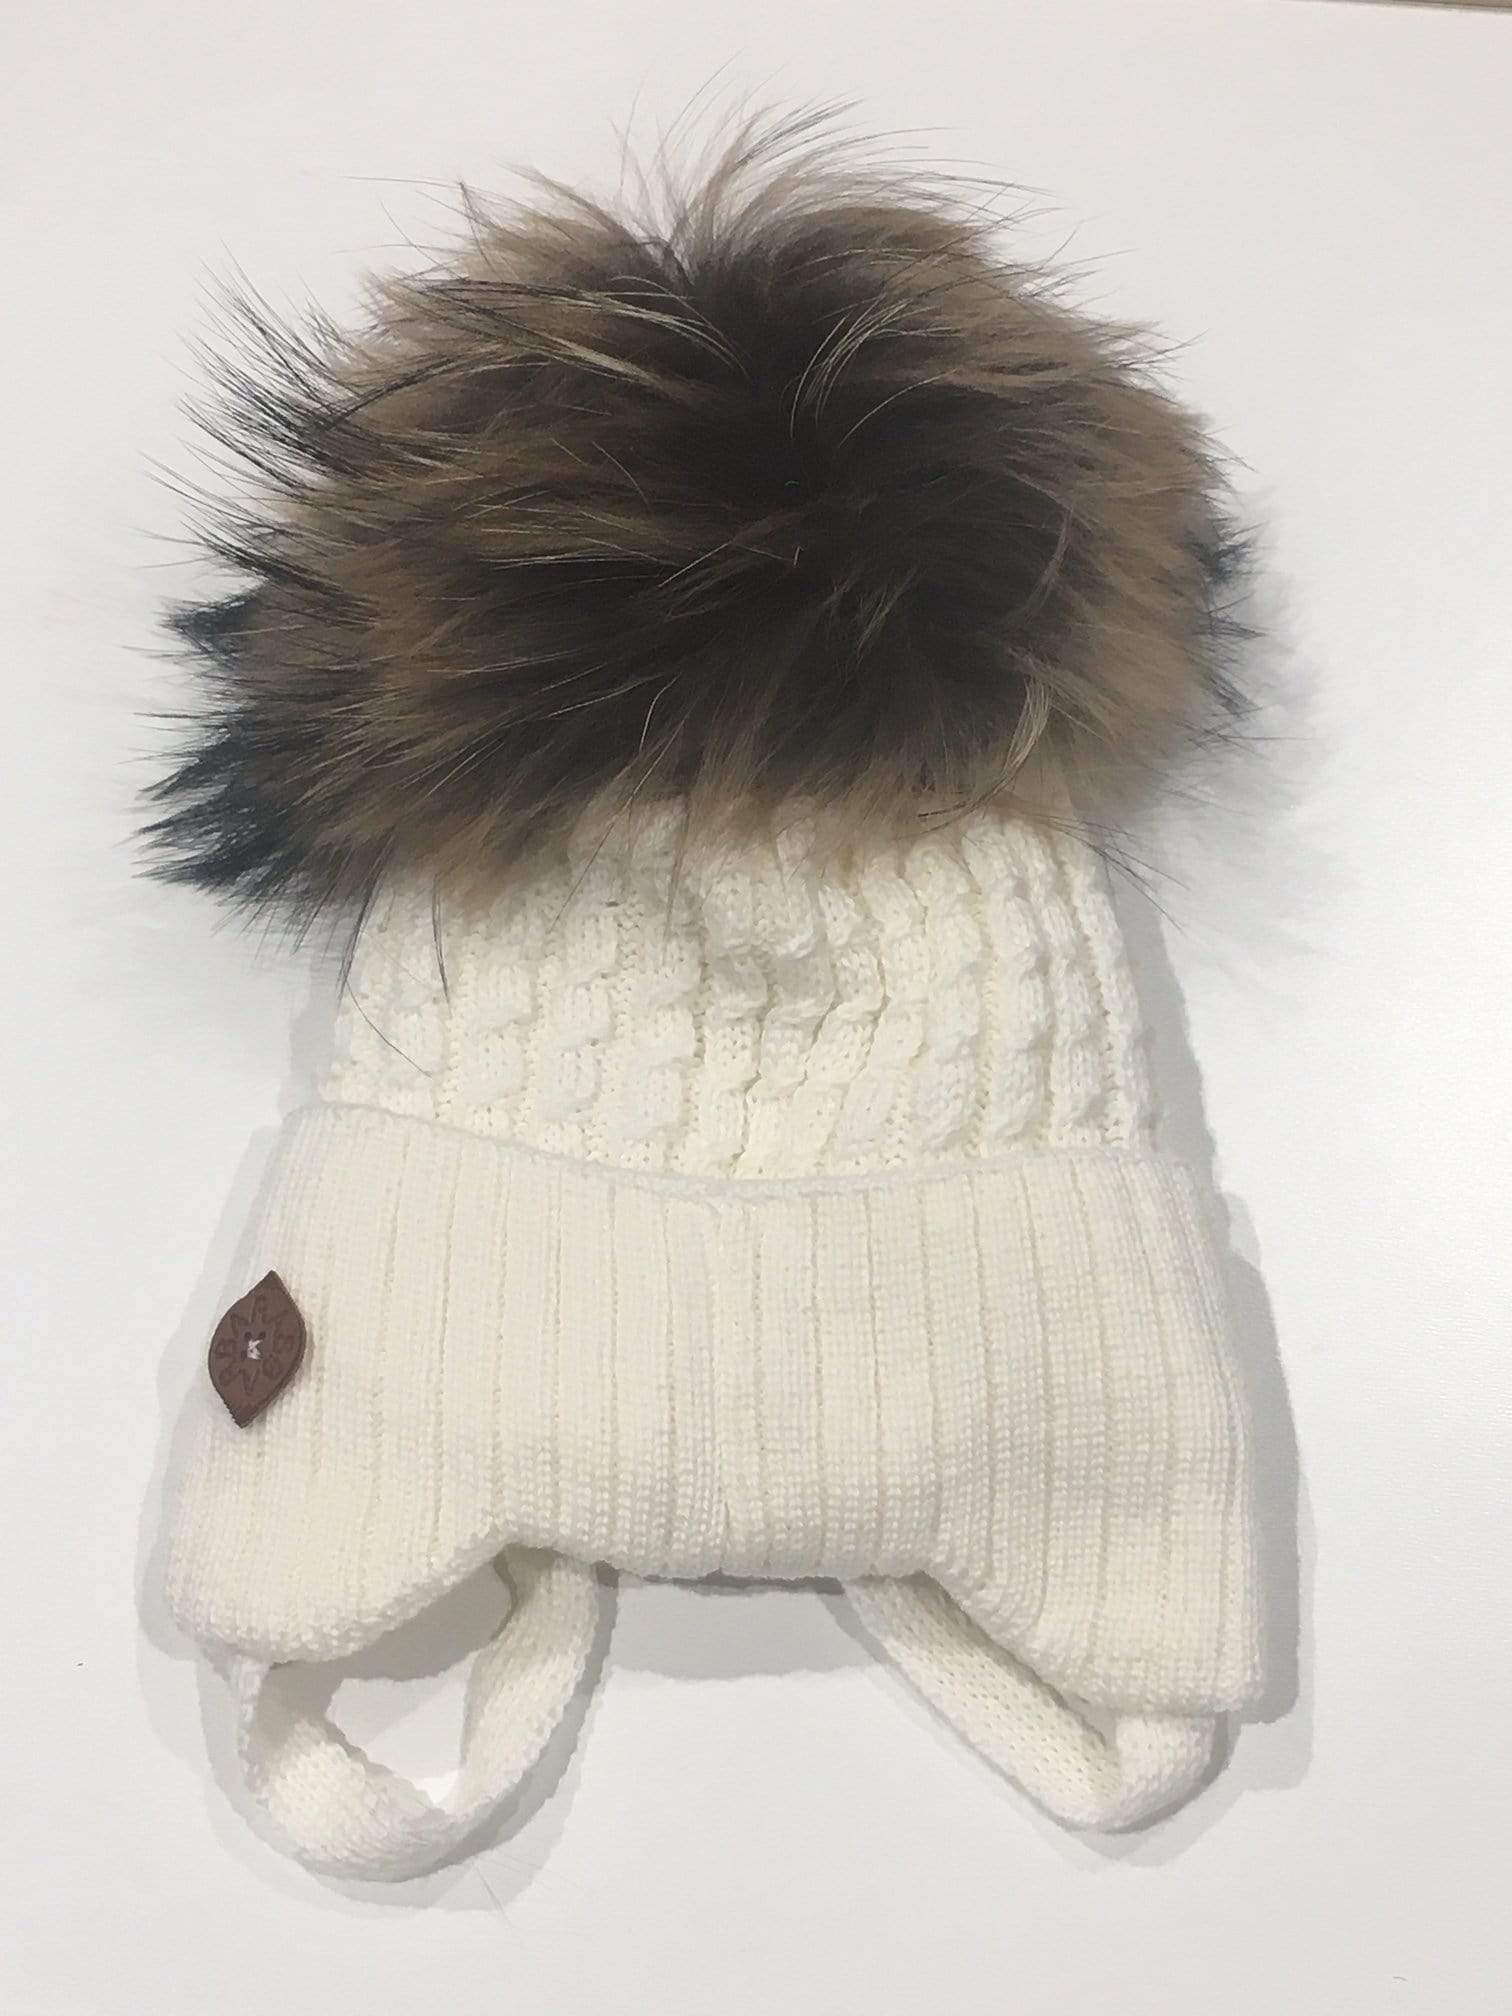 Barbaras Accessoires Tuque en laine creme avec cordon et fourrure Cream wool hat with lace and fur